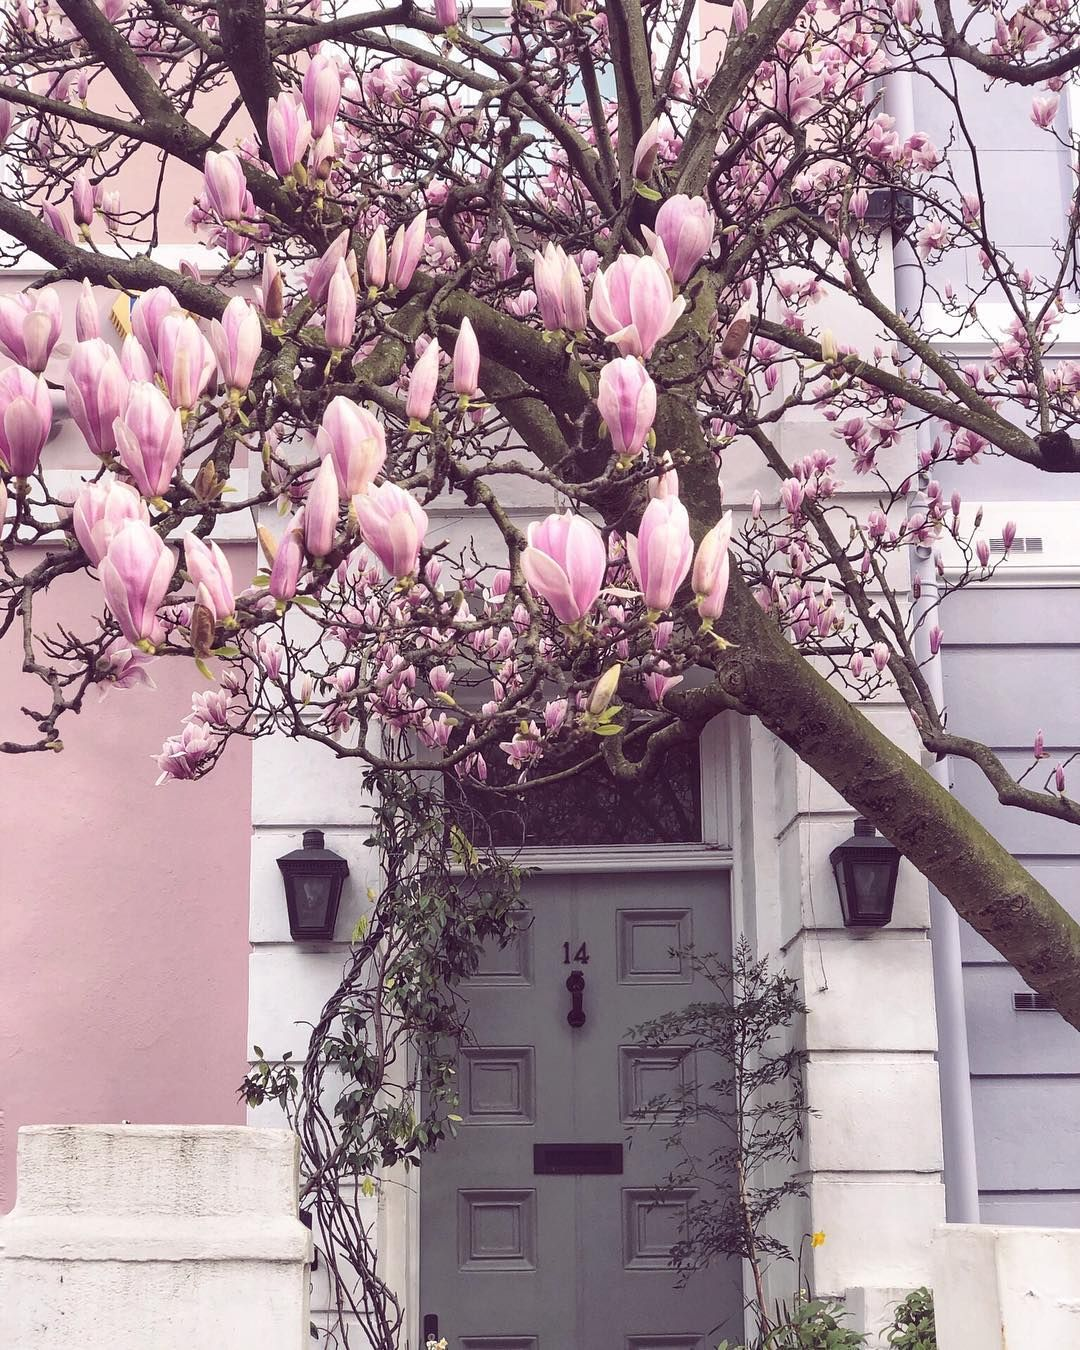 Blooming Magnolia Trees Whenever We Get A House I Want Some Of These Trees In Our Yard Magnolia Trees Magnolia Soulangeana Saucer Magnolia Tree